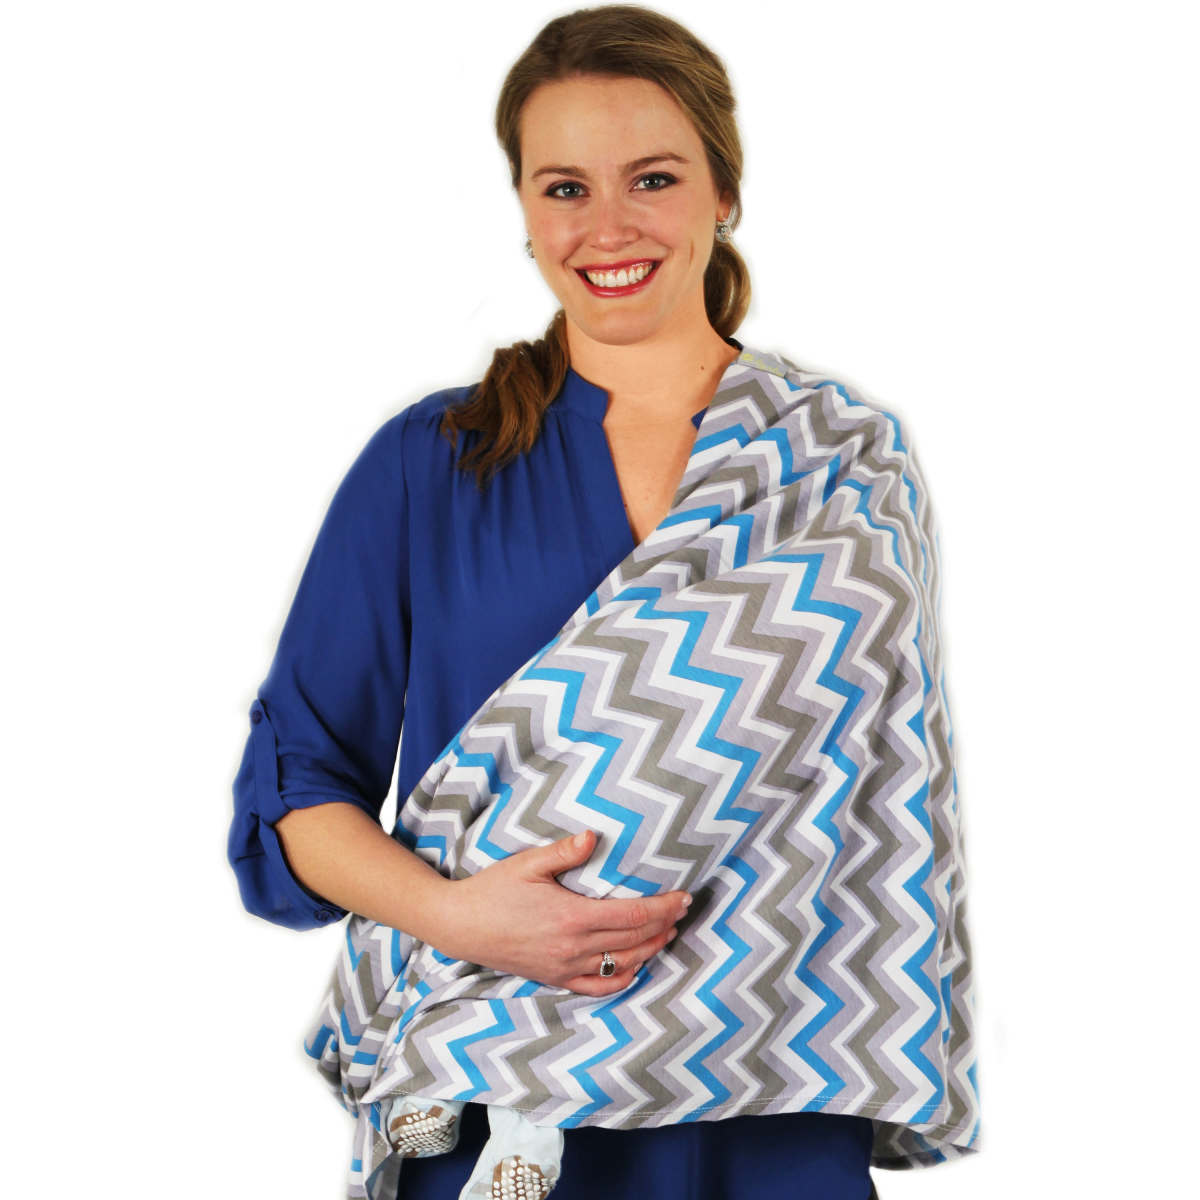 69640b39042be How to Pick Your Nursing Tops or Wraps